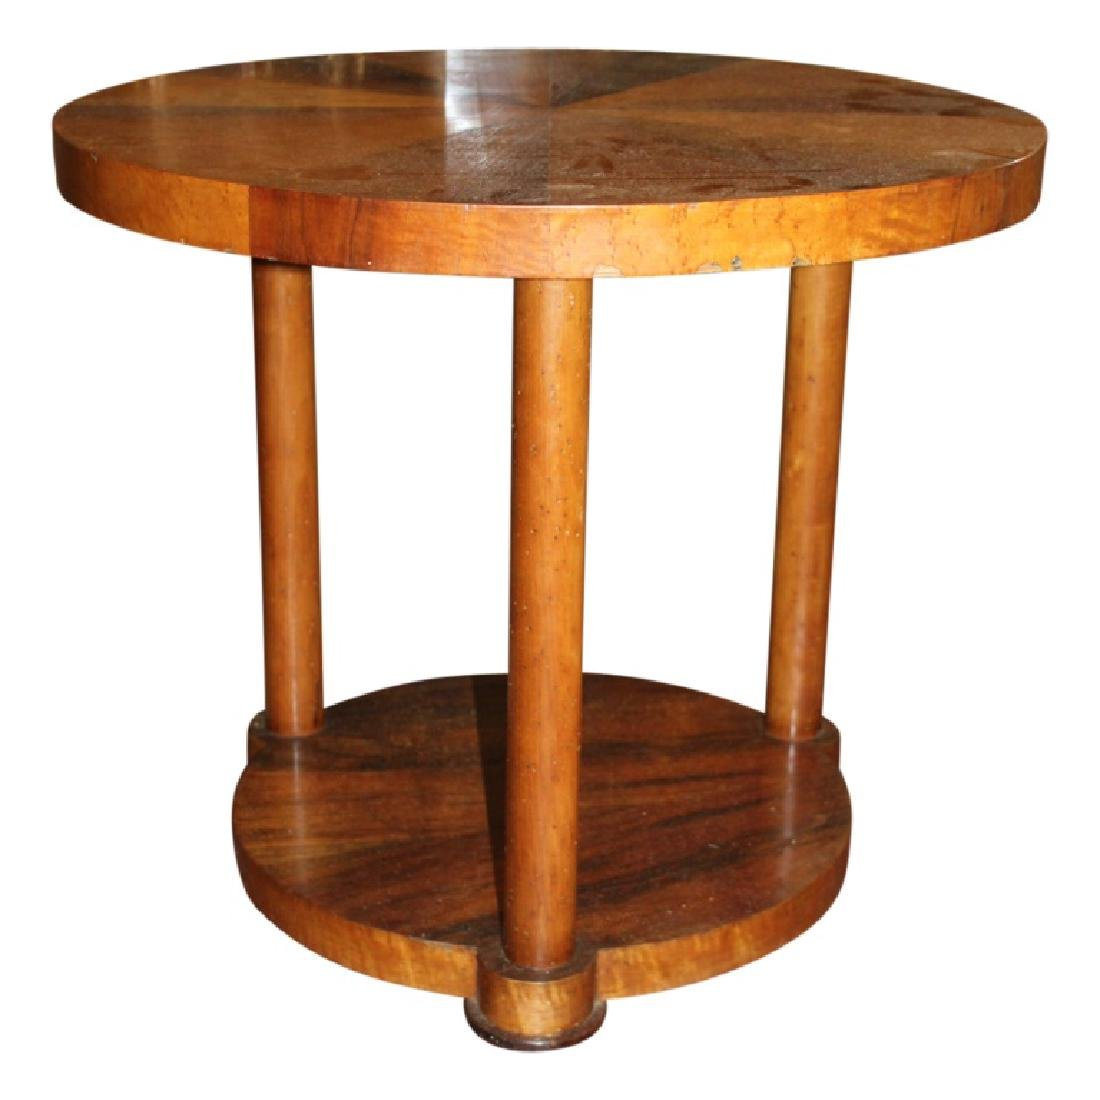 Modern Sunburst Biedermeier End Table